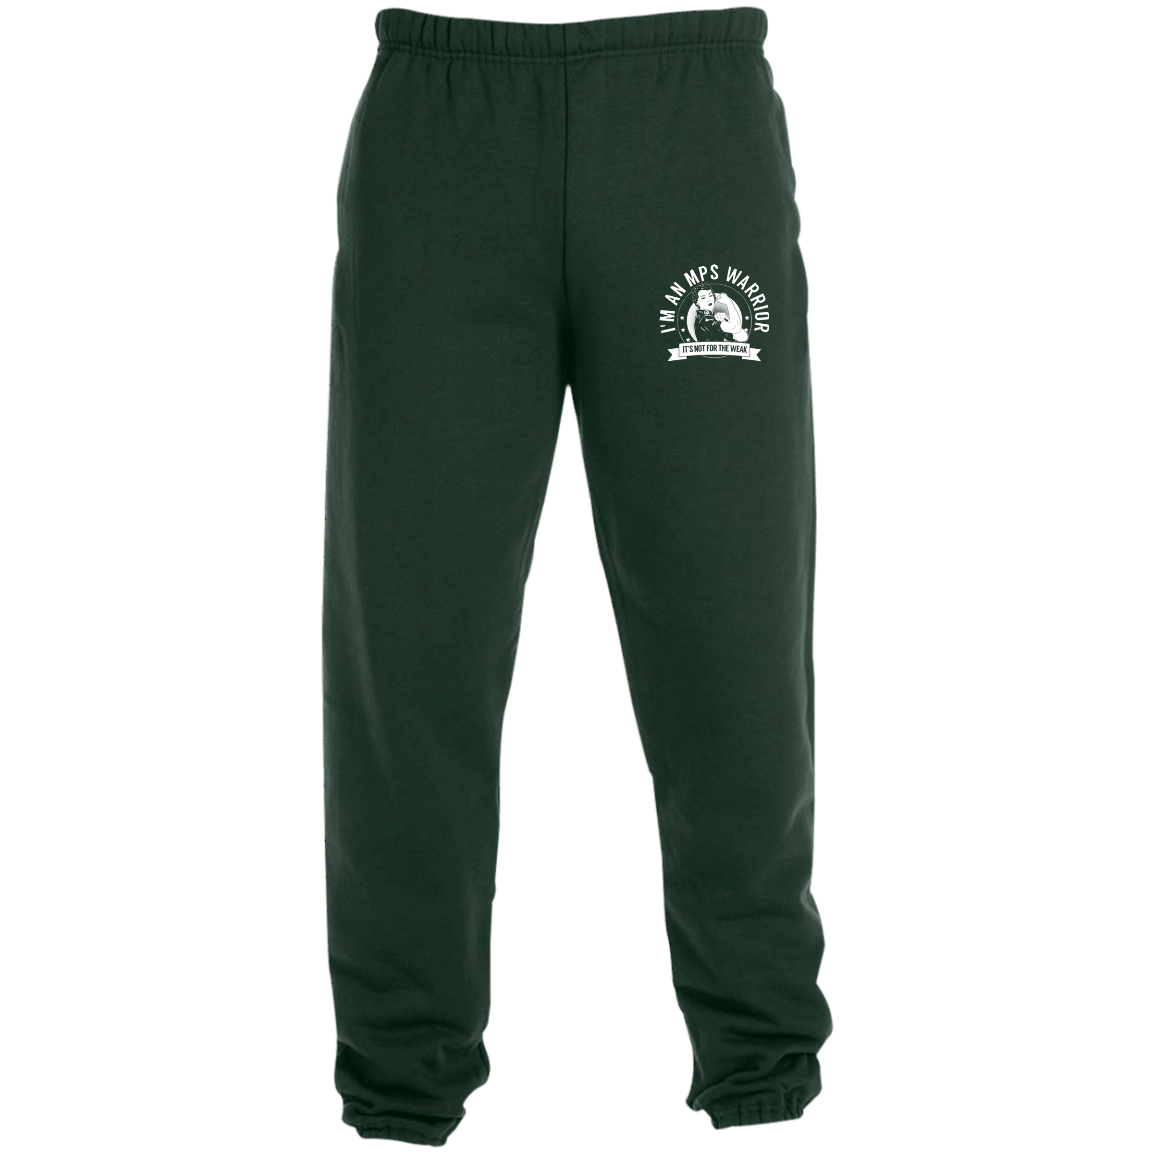 Sweatpants 3png - Myofascial Pain Syndrome - MPS Warrior NFTW Sweatpants with ...